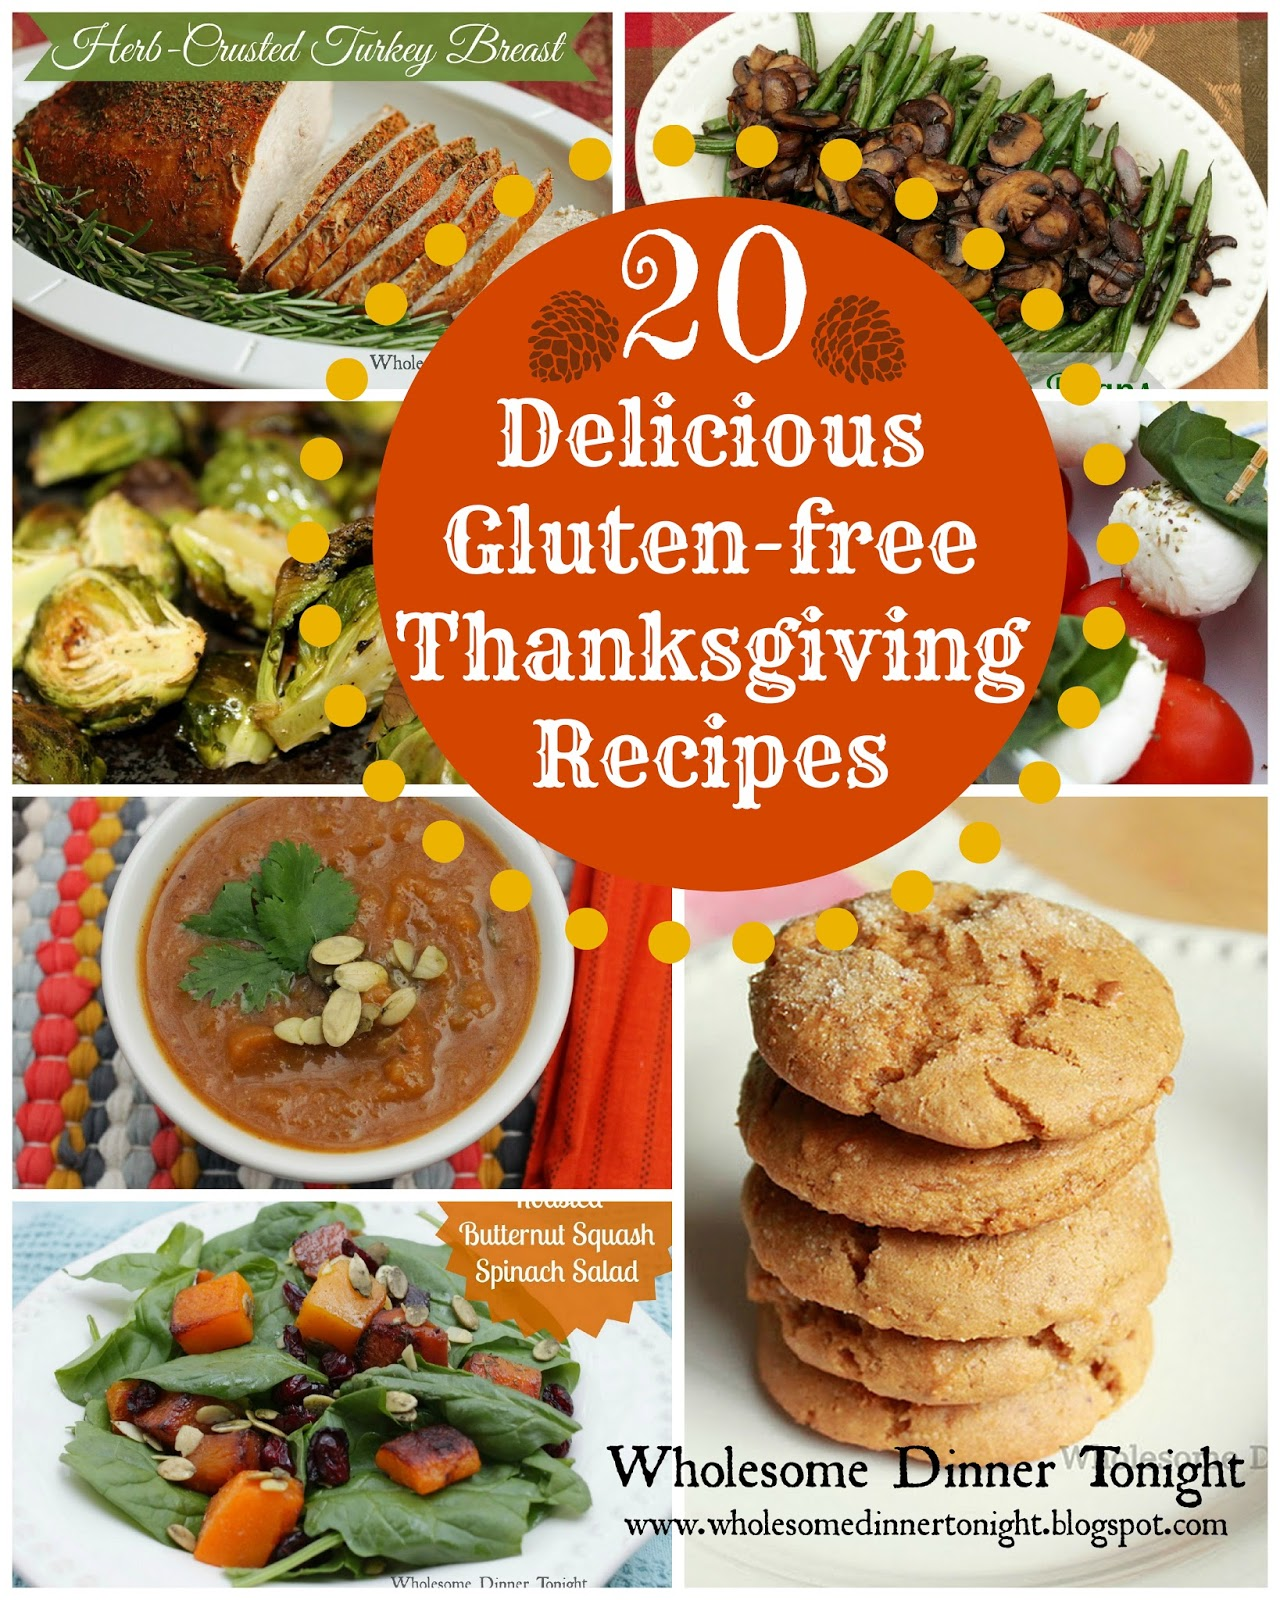 ... Delicious Gluten-free Thanksgiving Recipes {Gluten-free, Thanksgiving